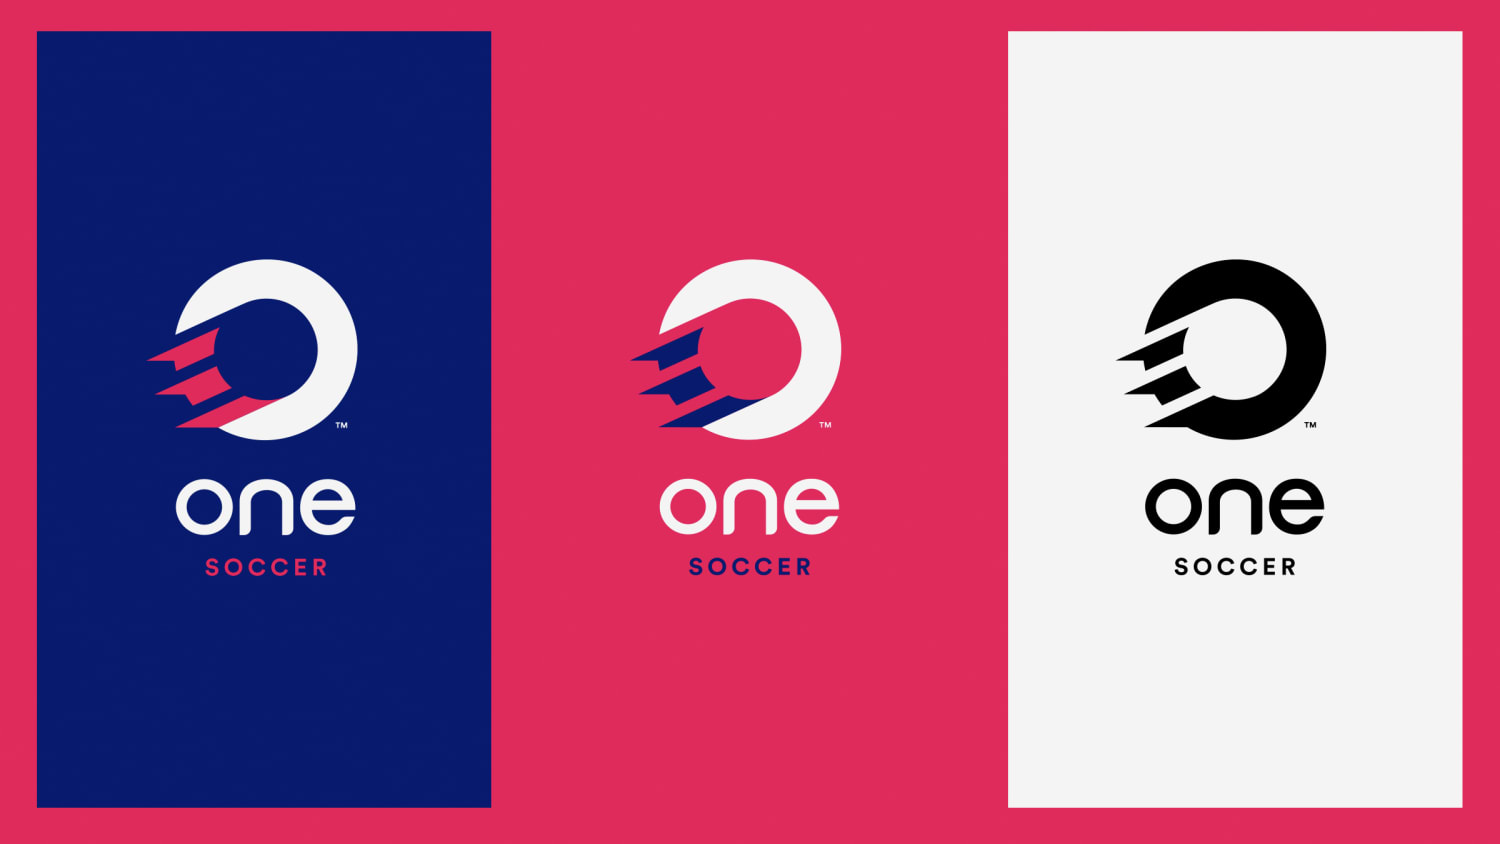 One Soccer Logo. Background hot pink. Left image in blue, middle hot pin, right image in white